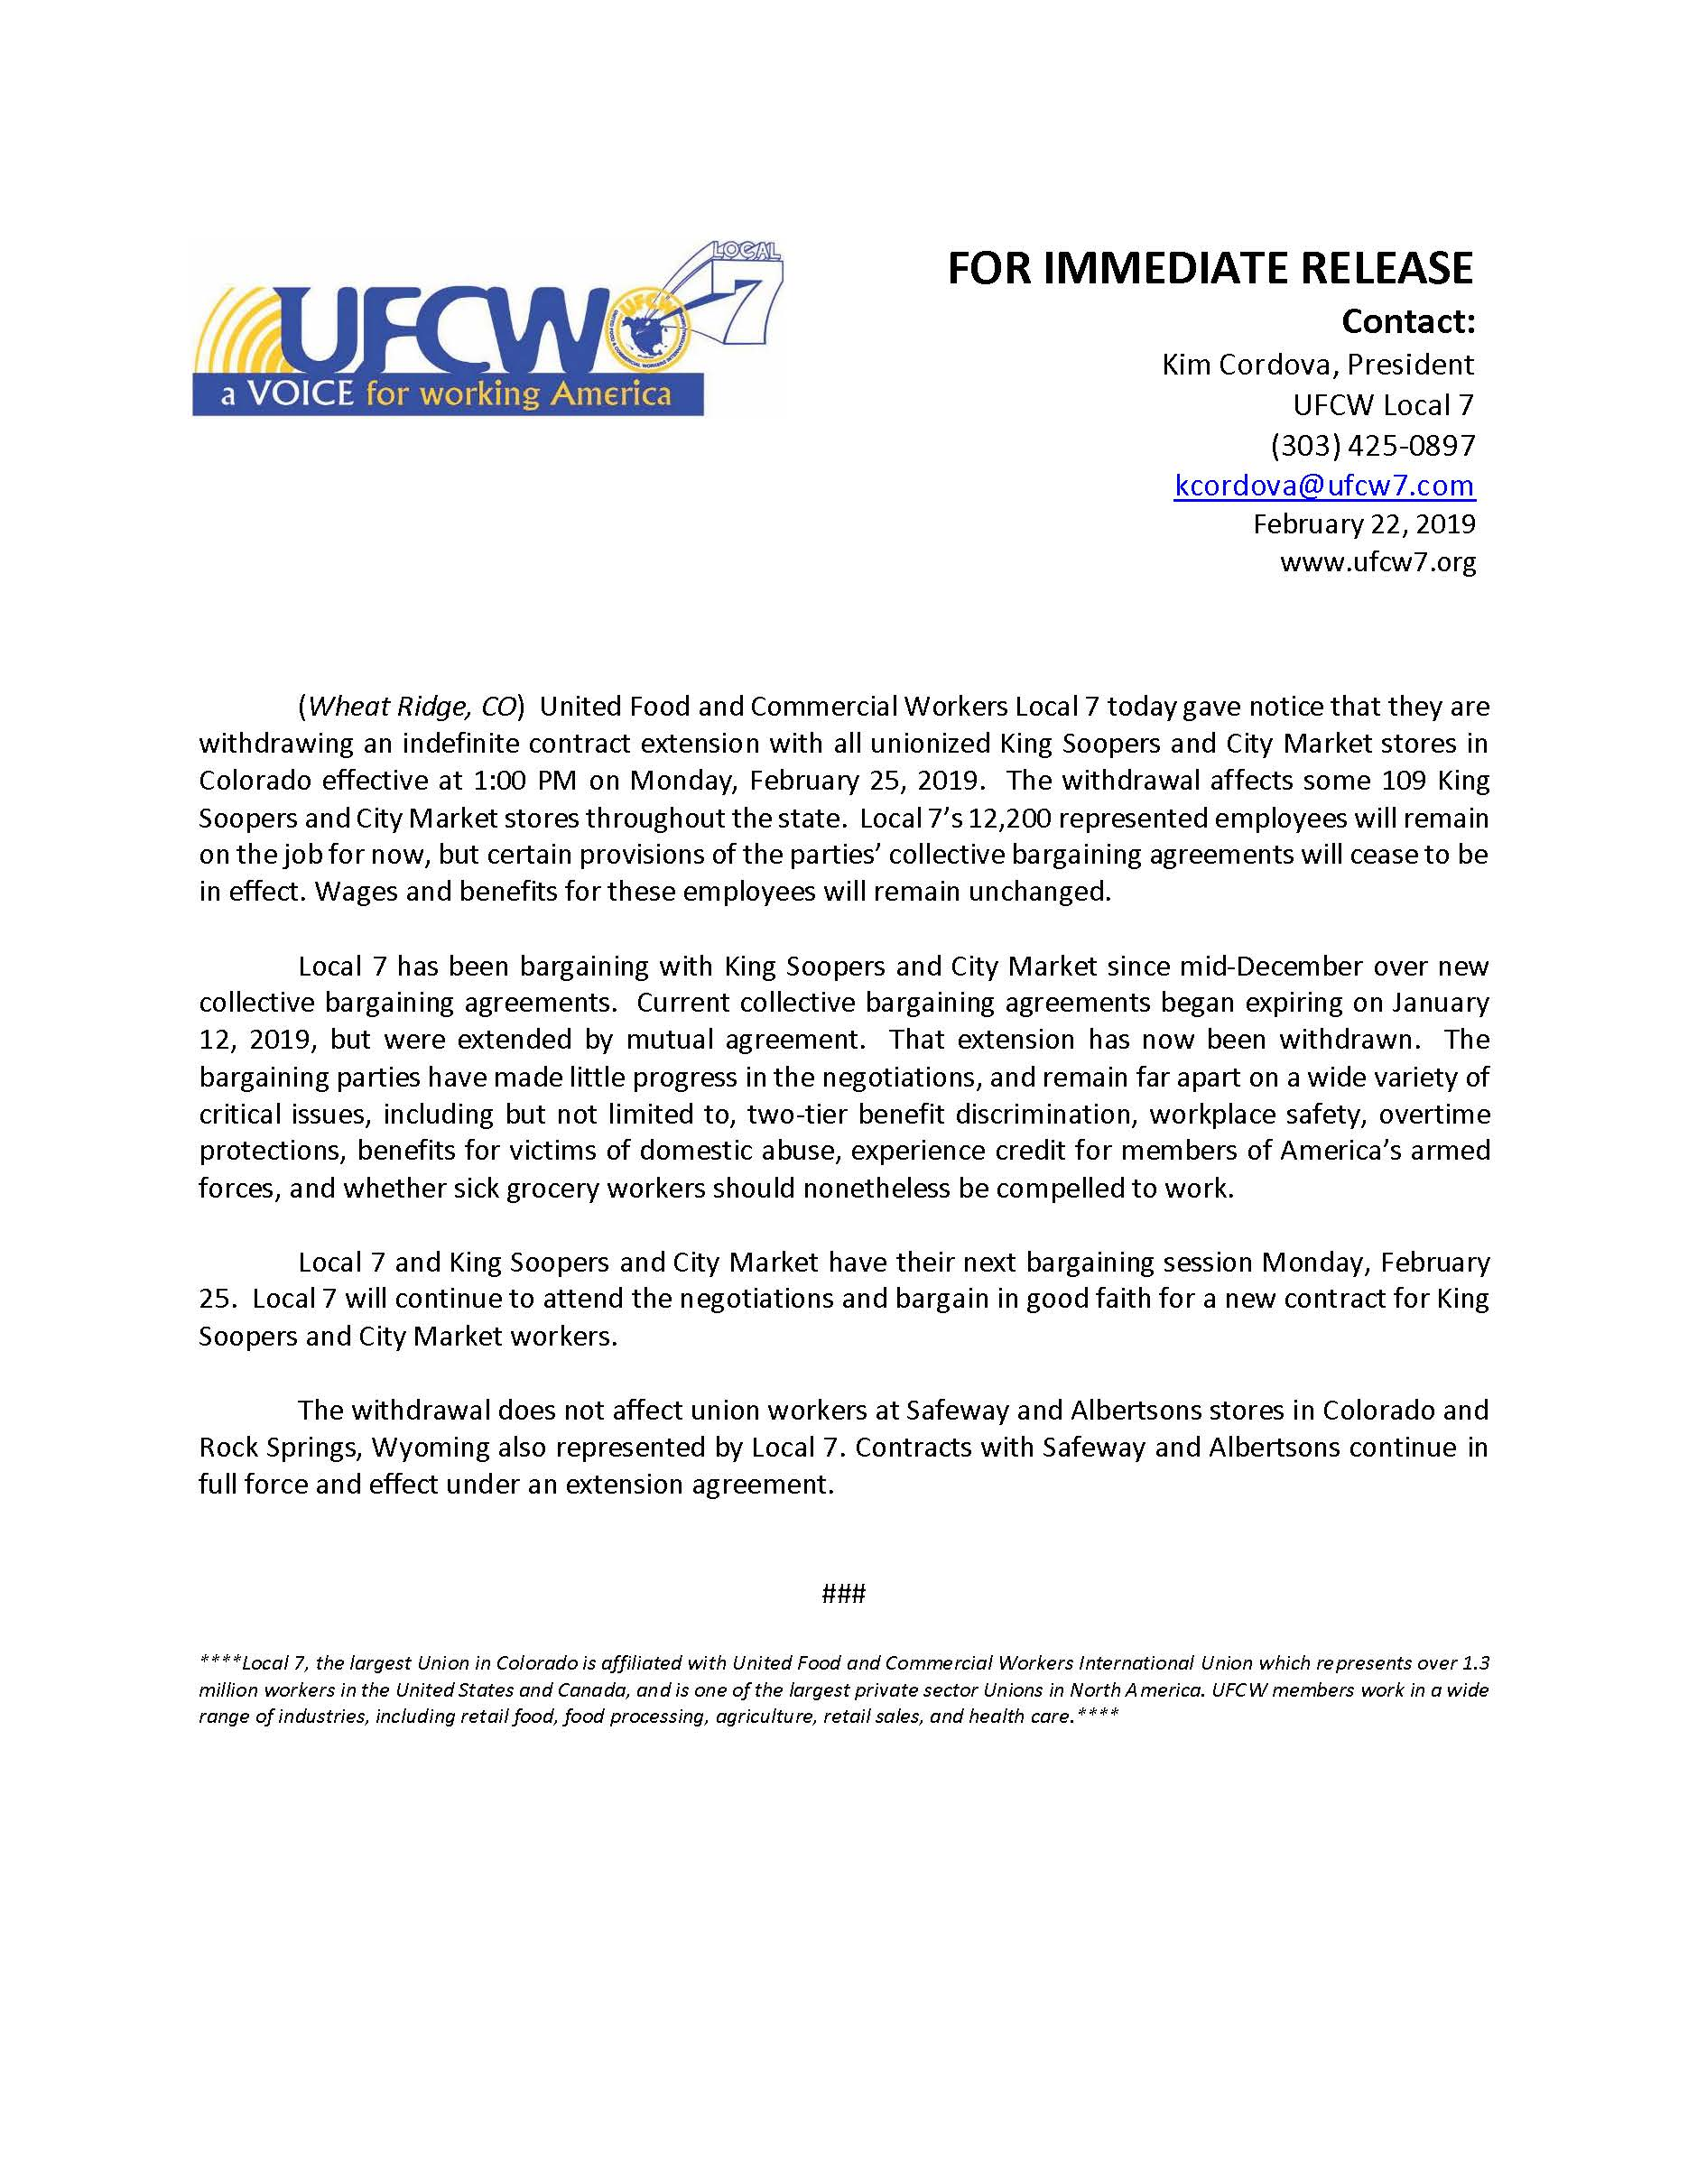 Press Release – King Soopers City Market Extension Agreement Withdrawal